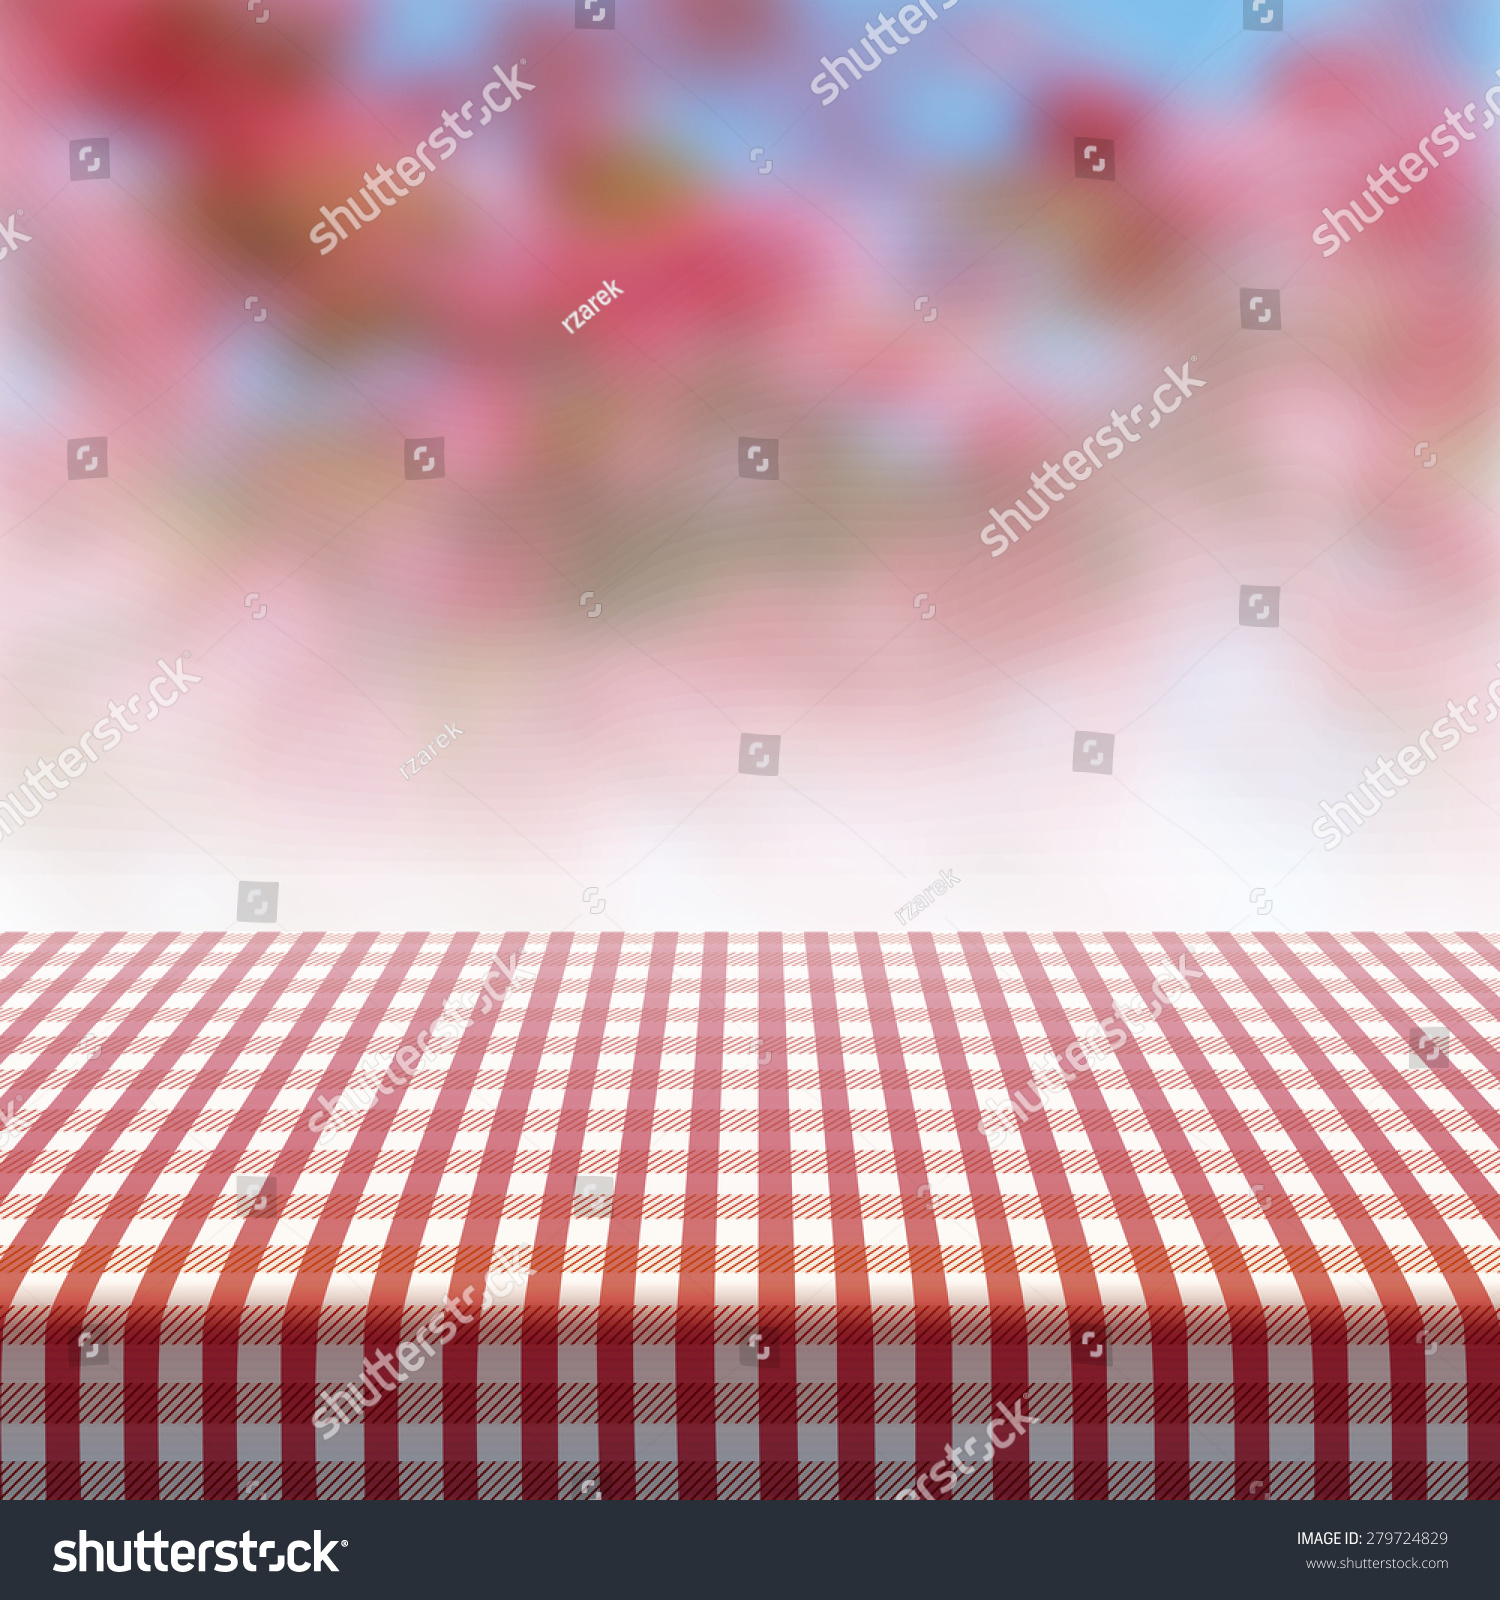 Vector Picnic Table Covered With Tablecloth On Blurred Background.